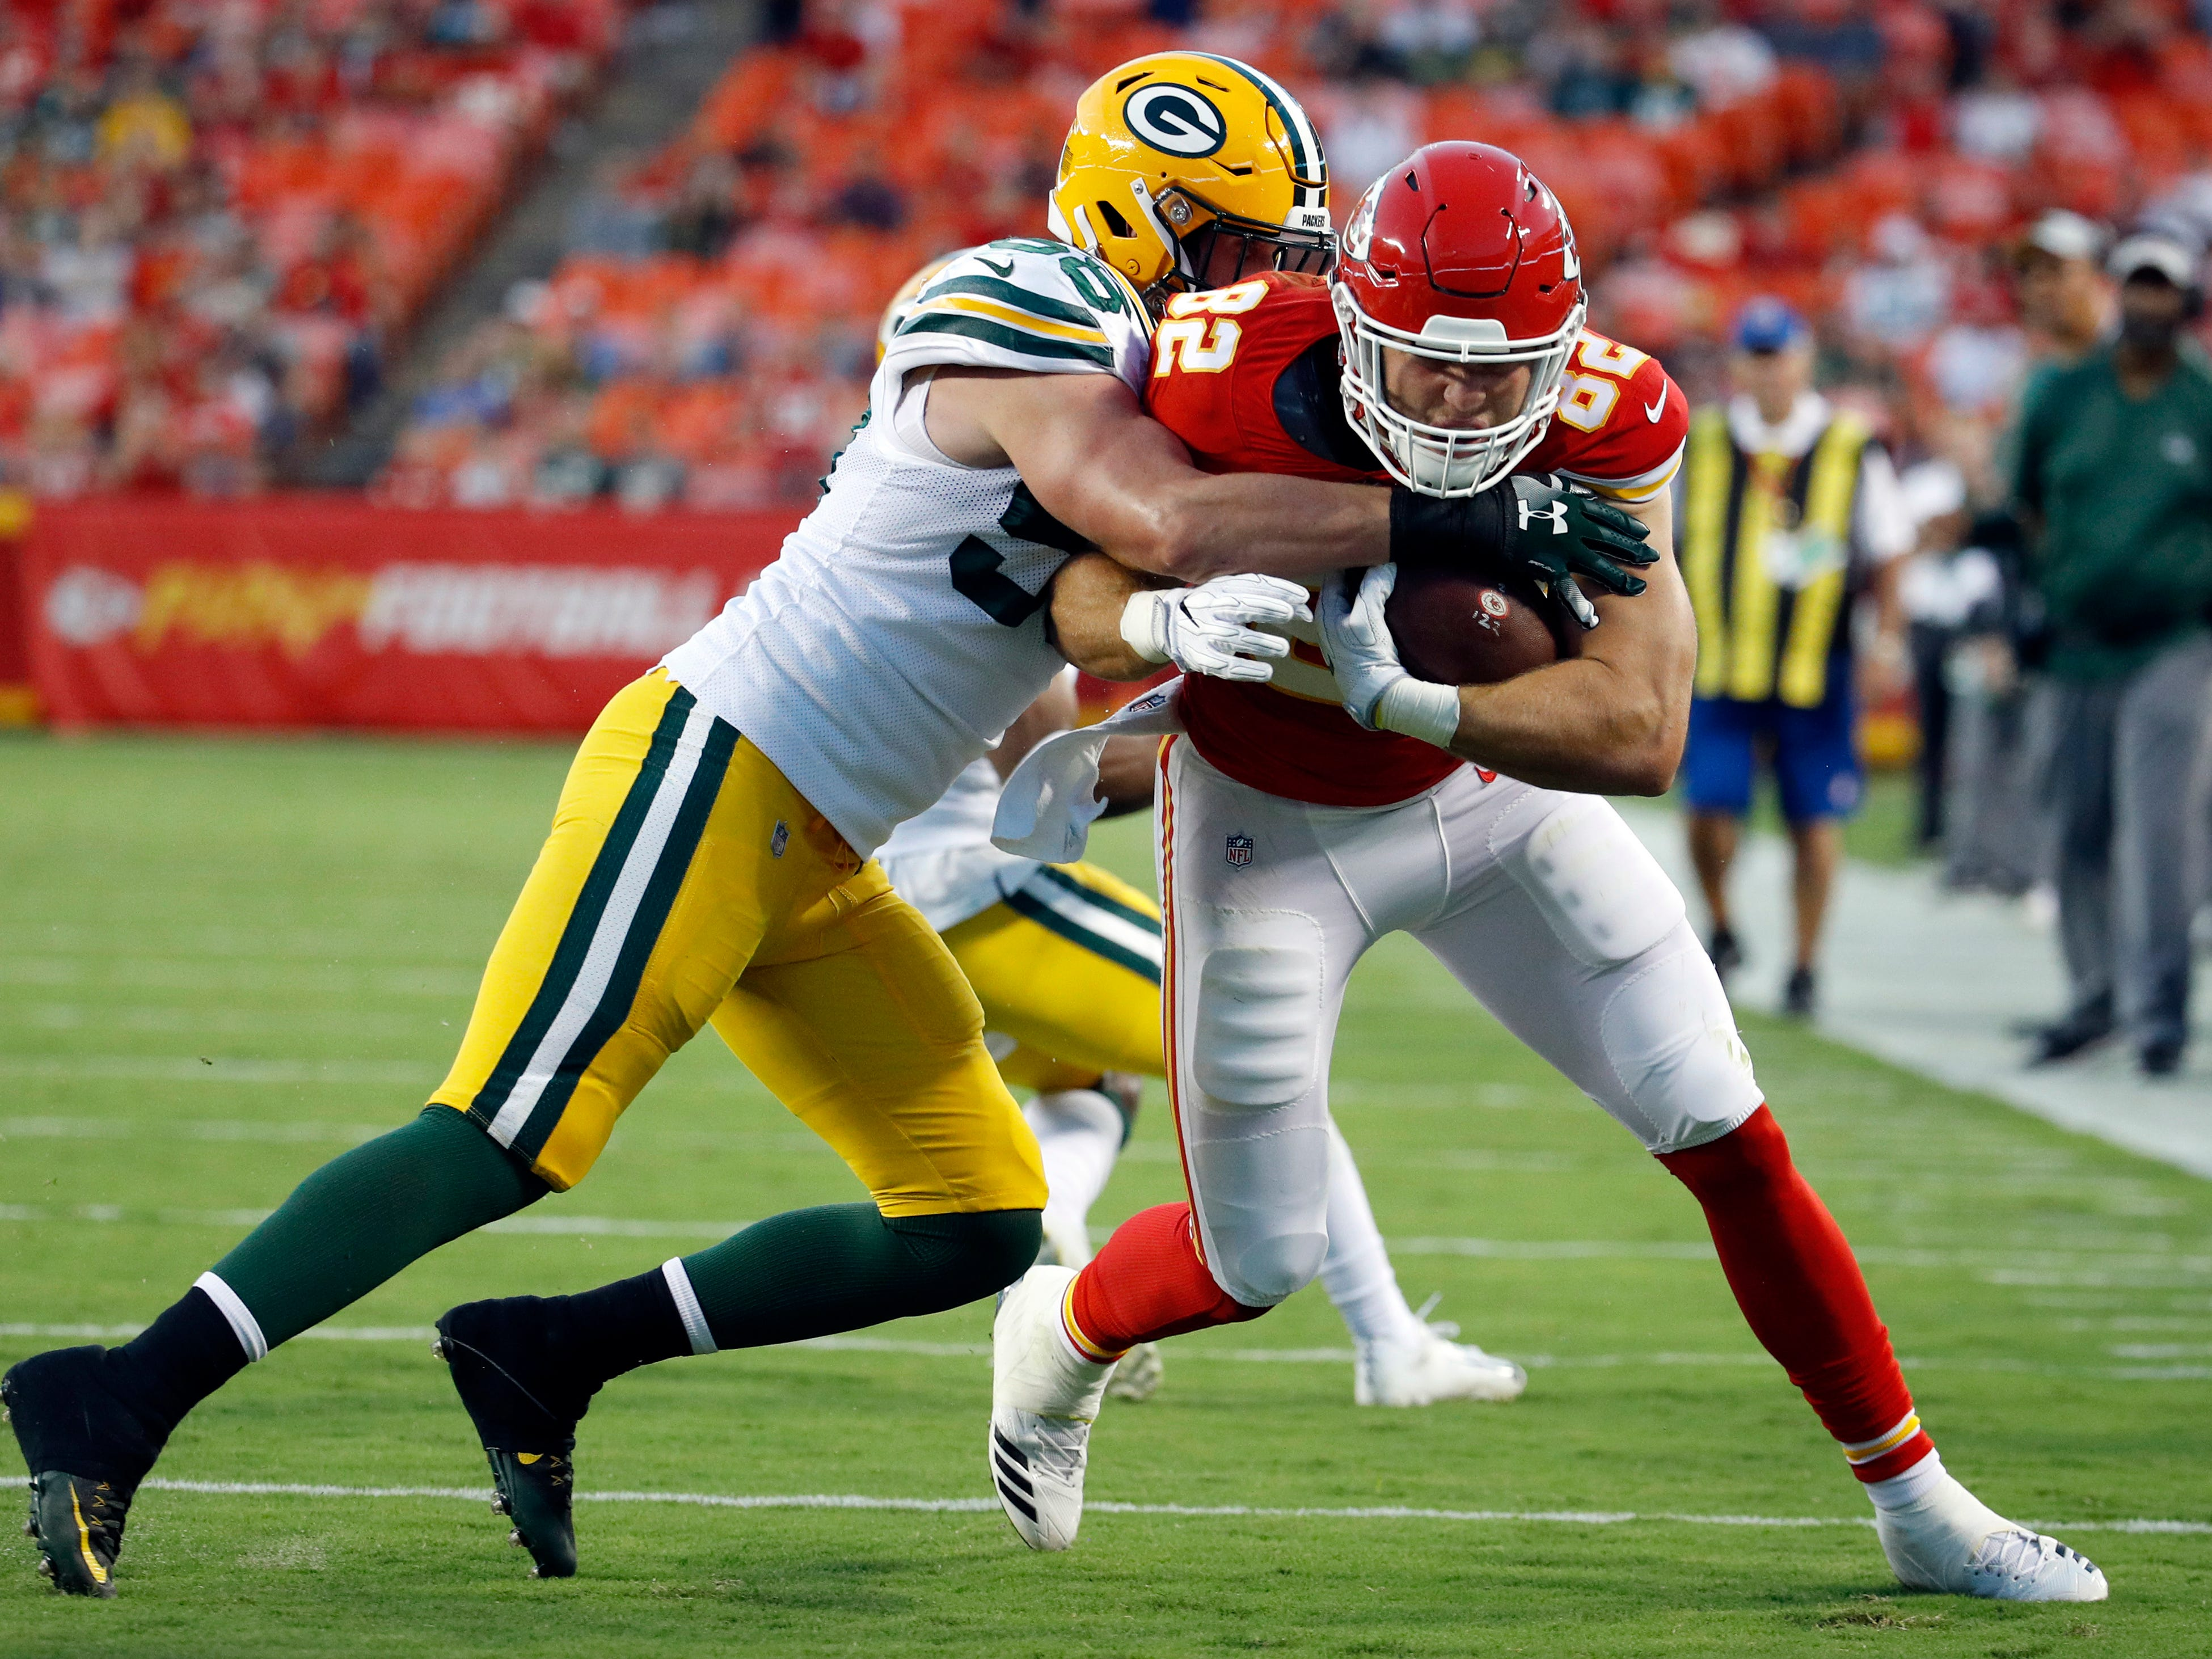 Kansas City Chiefs tight end Alex Ellis (82) is tackled by Green Bay Packers linebacker Greer Martini (58) during the first half of an NFL preseason football game in Kansas City, Mo., Thursday, Aug. 30, 2018.